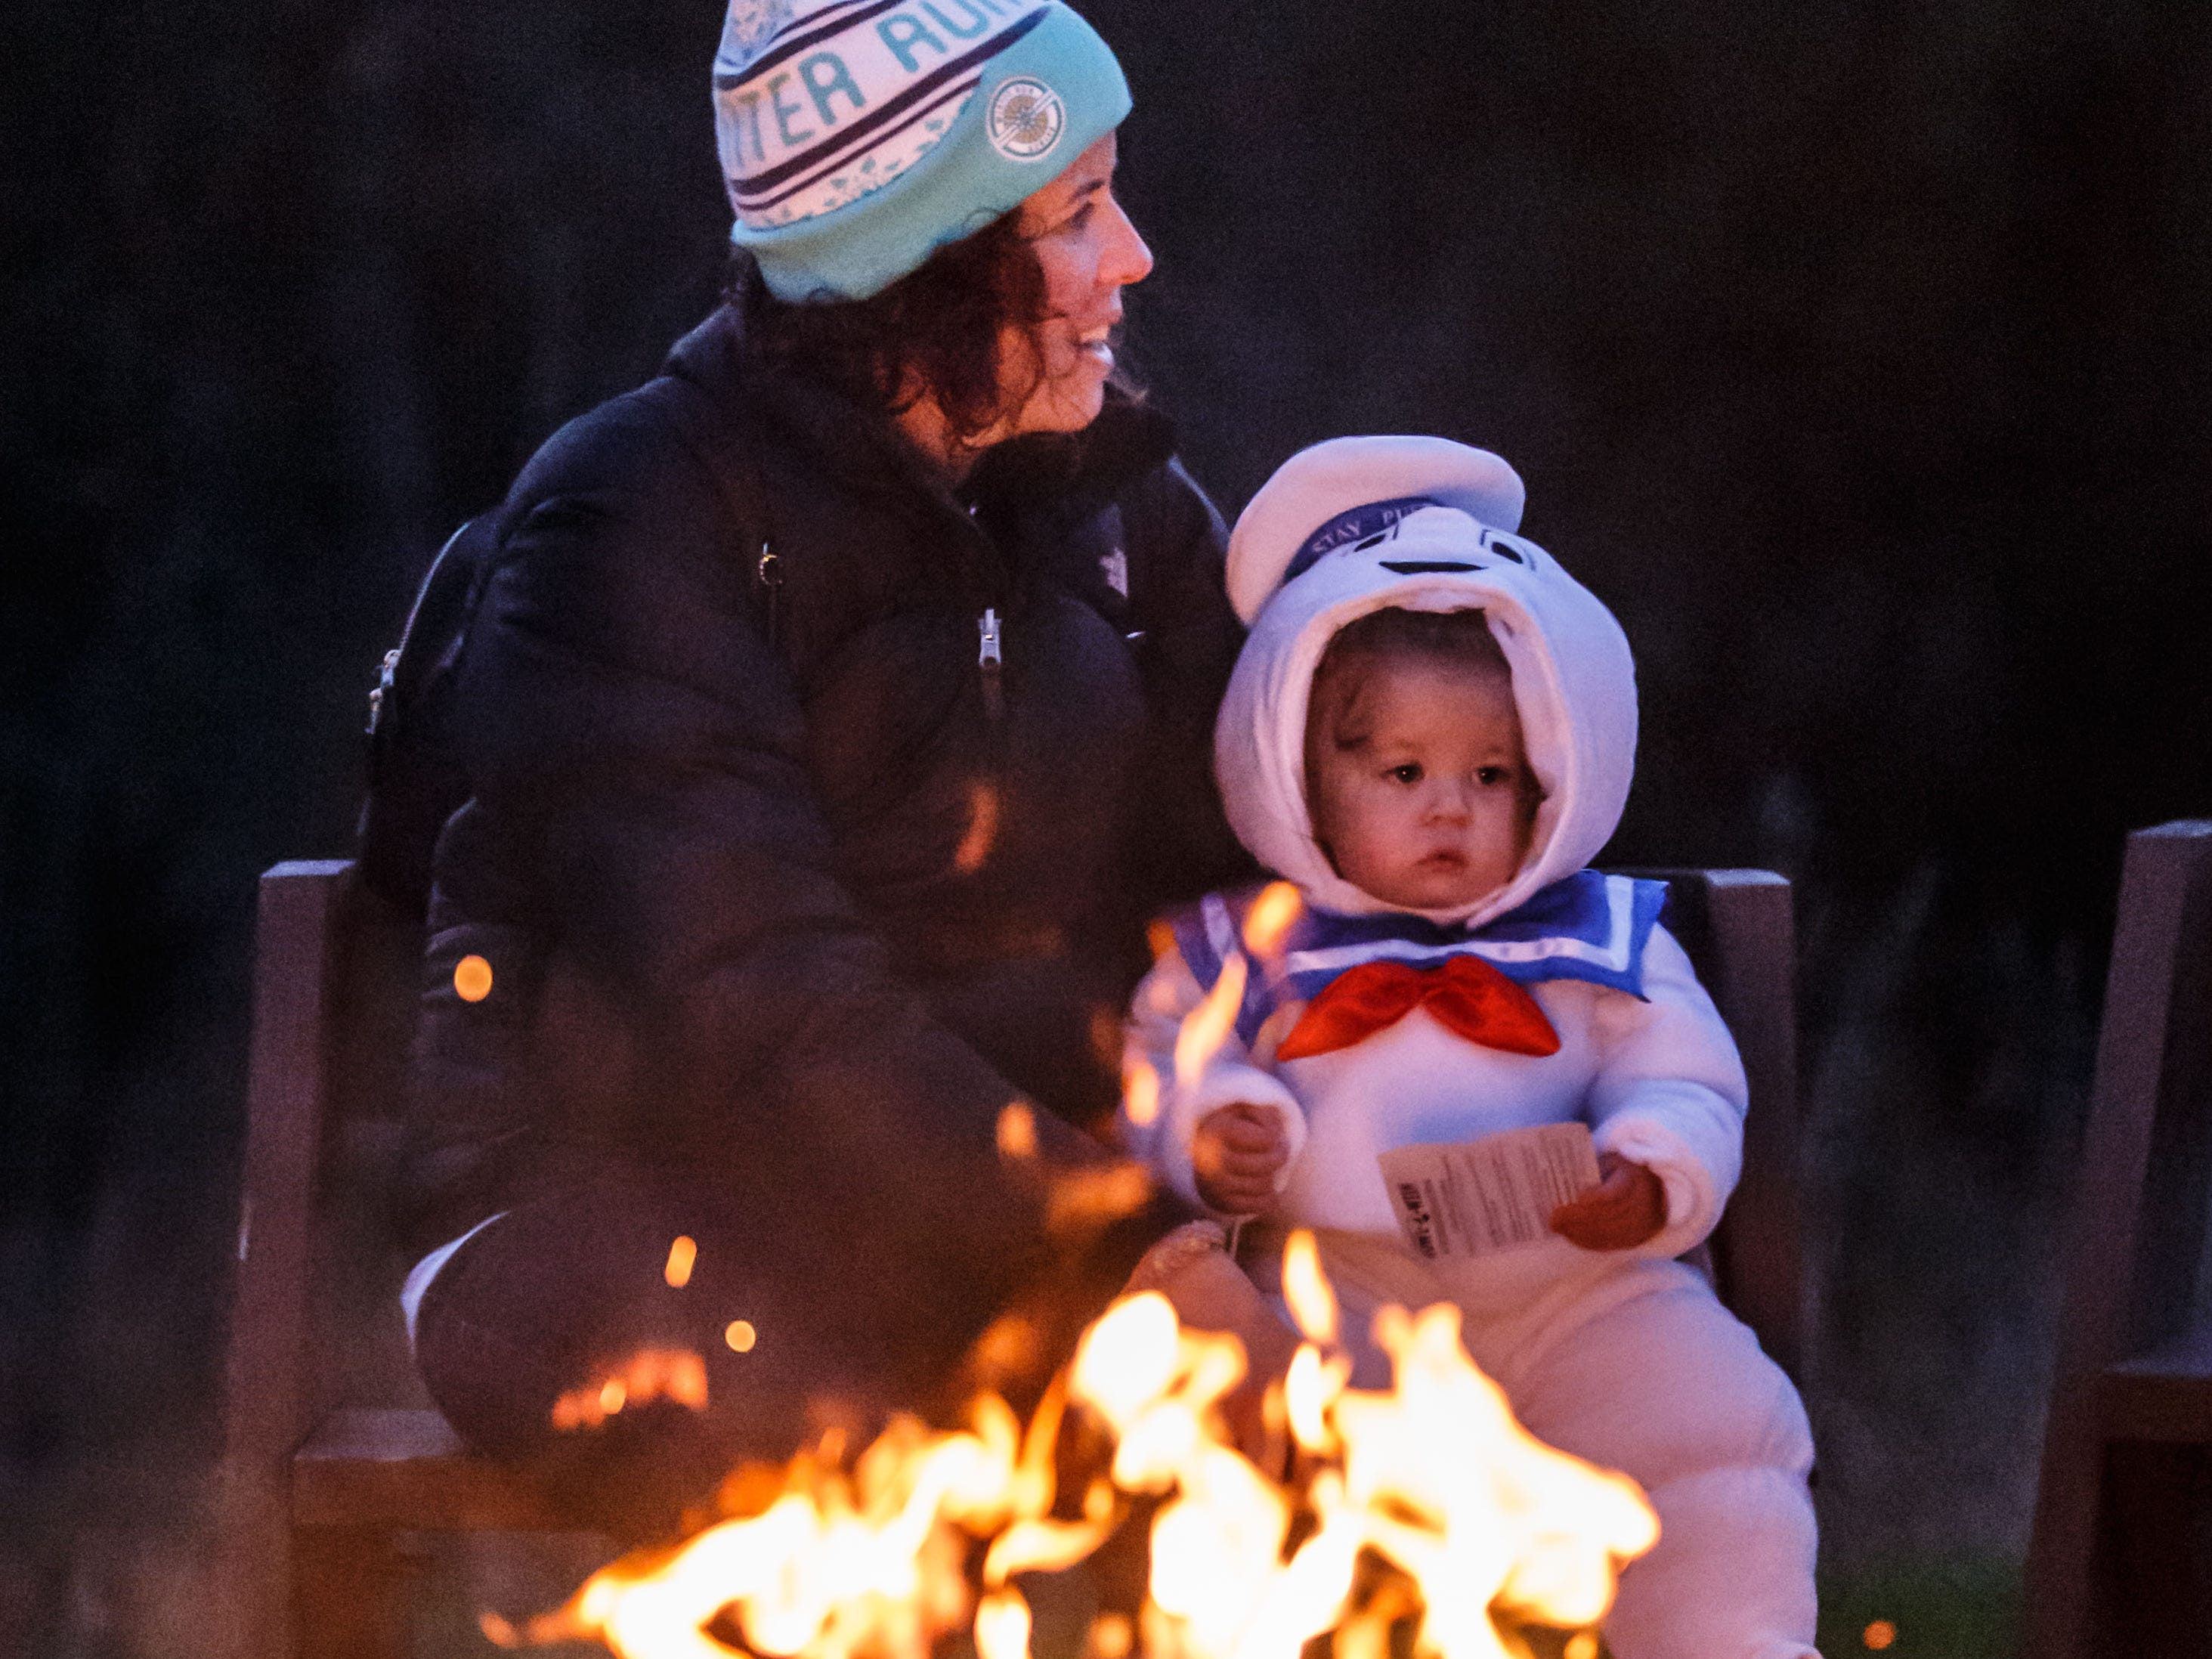 Marlo Johnson of Waukesha and her one-year-old daughter Paisley enjoy the warmth of a bonfire during Howl-O-Ween at Retzer Nature Center in Waukesha on Friday, Oct. 12, 2018. The family friendly event featured night hikes, children's games, a DJ dance party, planetarium shows, a campfire and more.